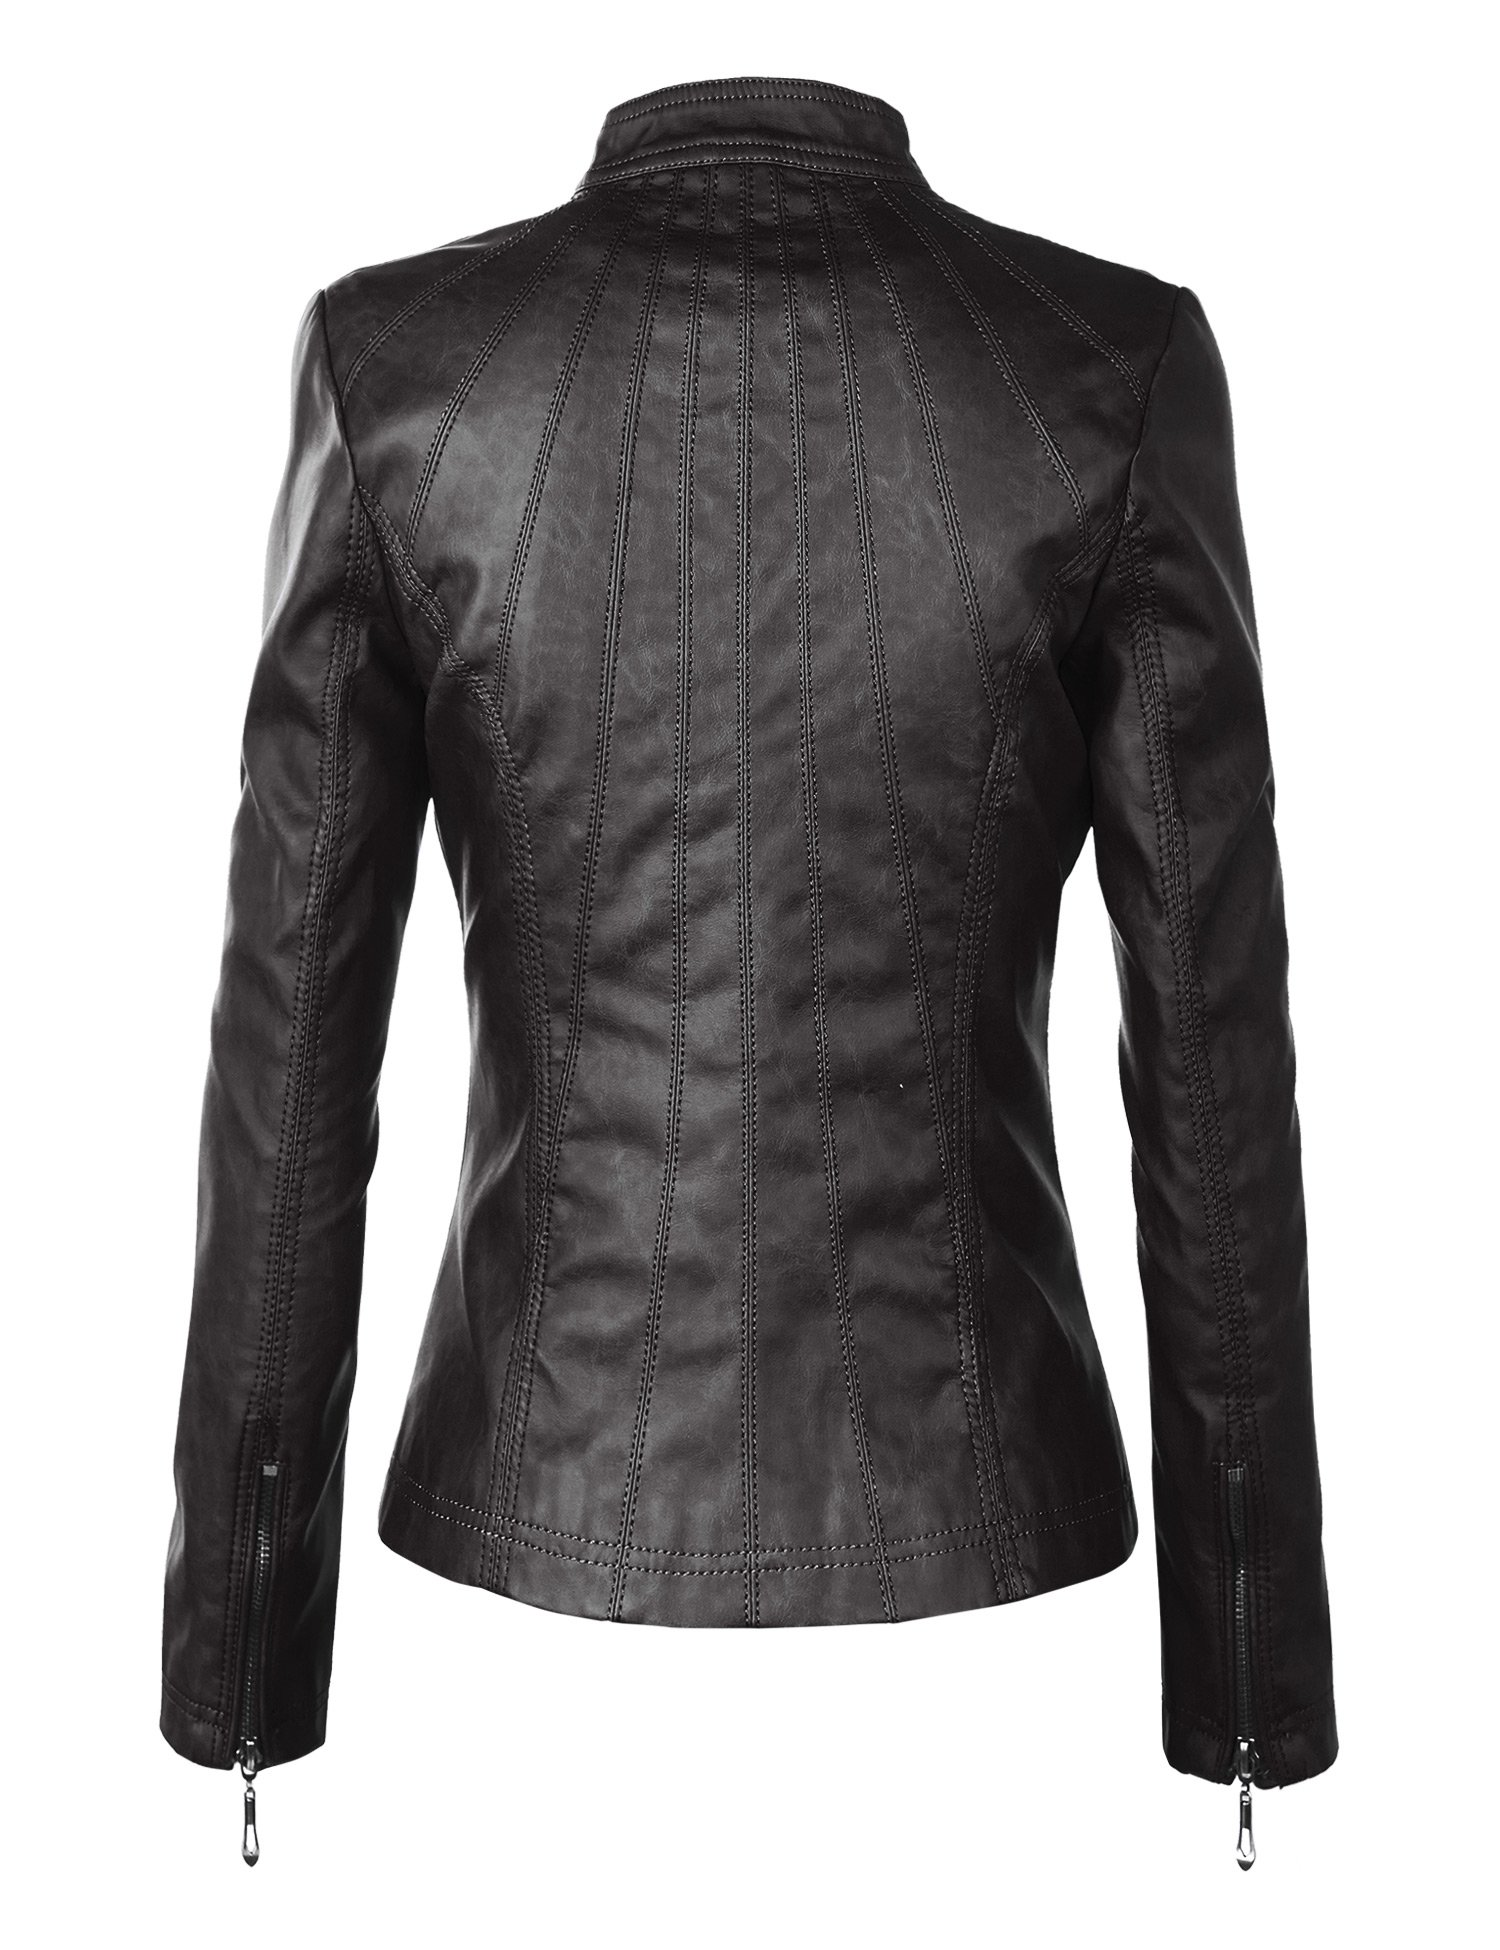 WJC877 Womens Panelled Faux Leather Moto Jacket L BLACK by Lock and Love (Image #2)